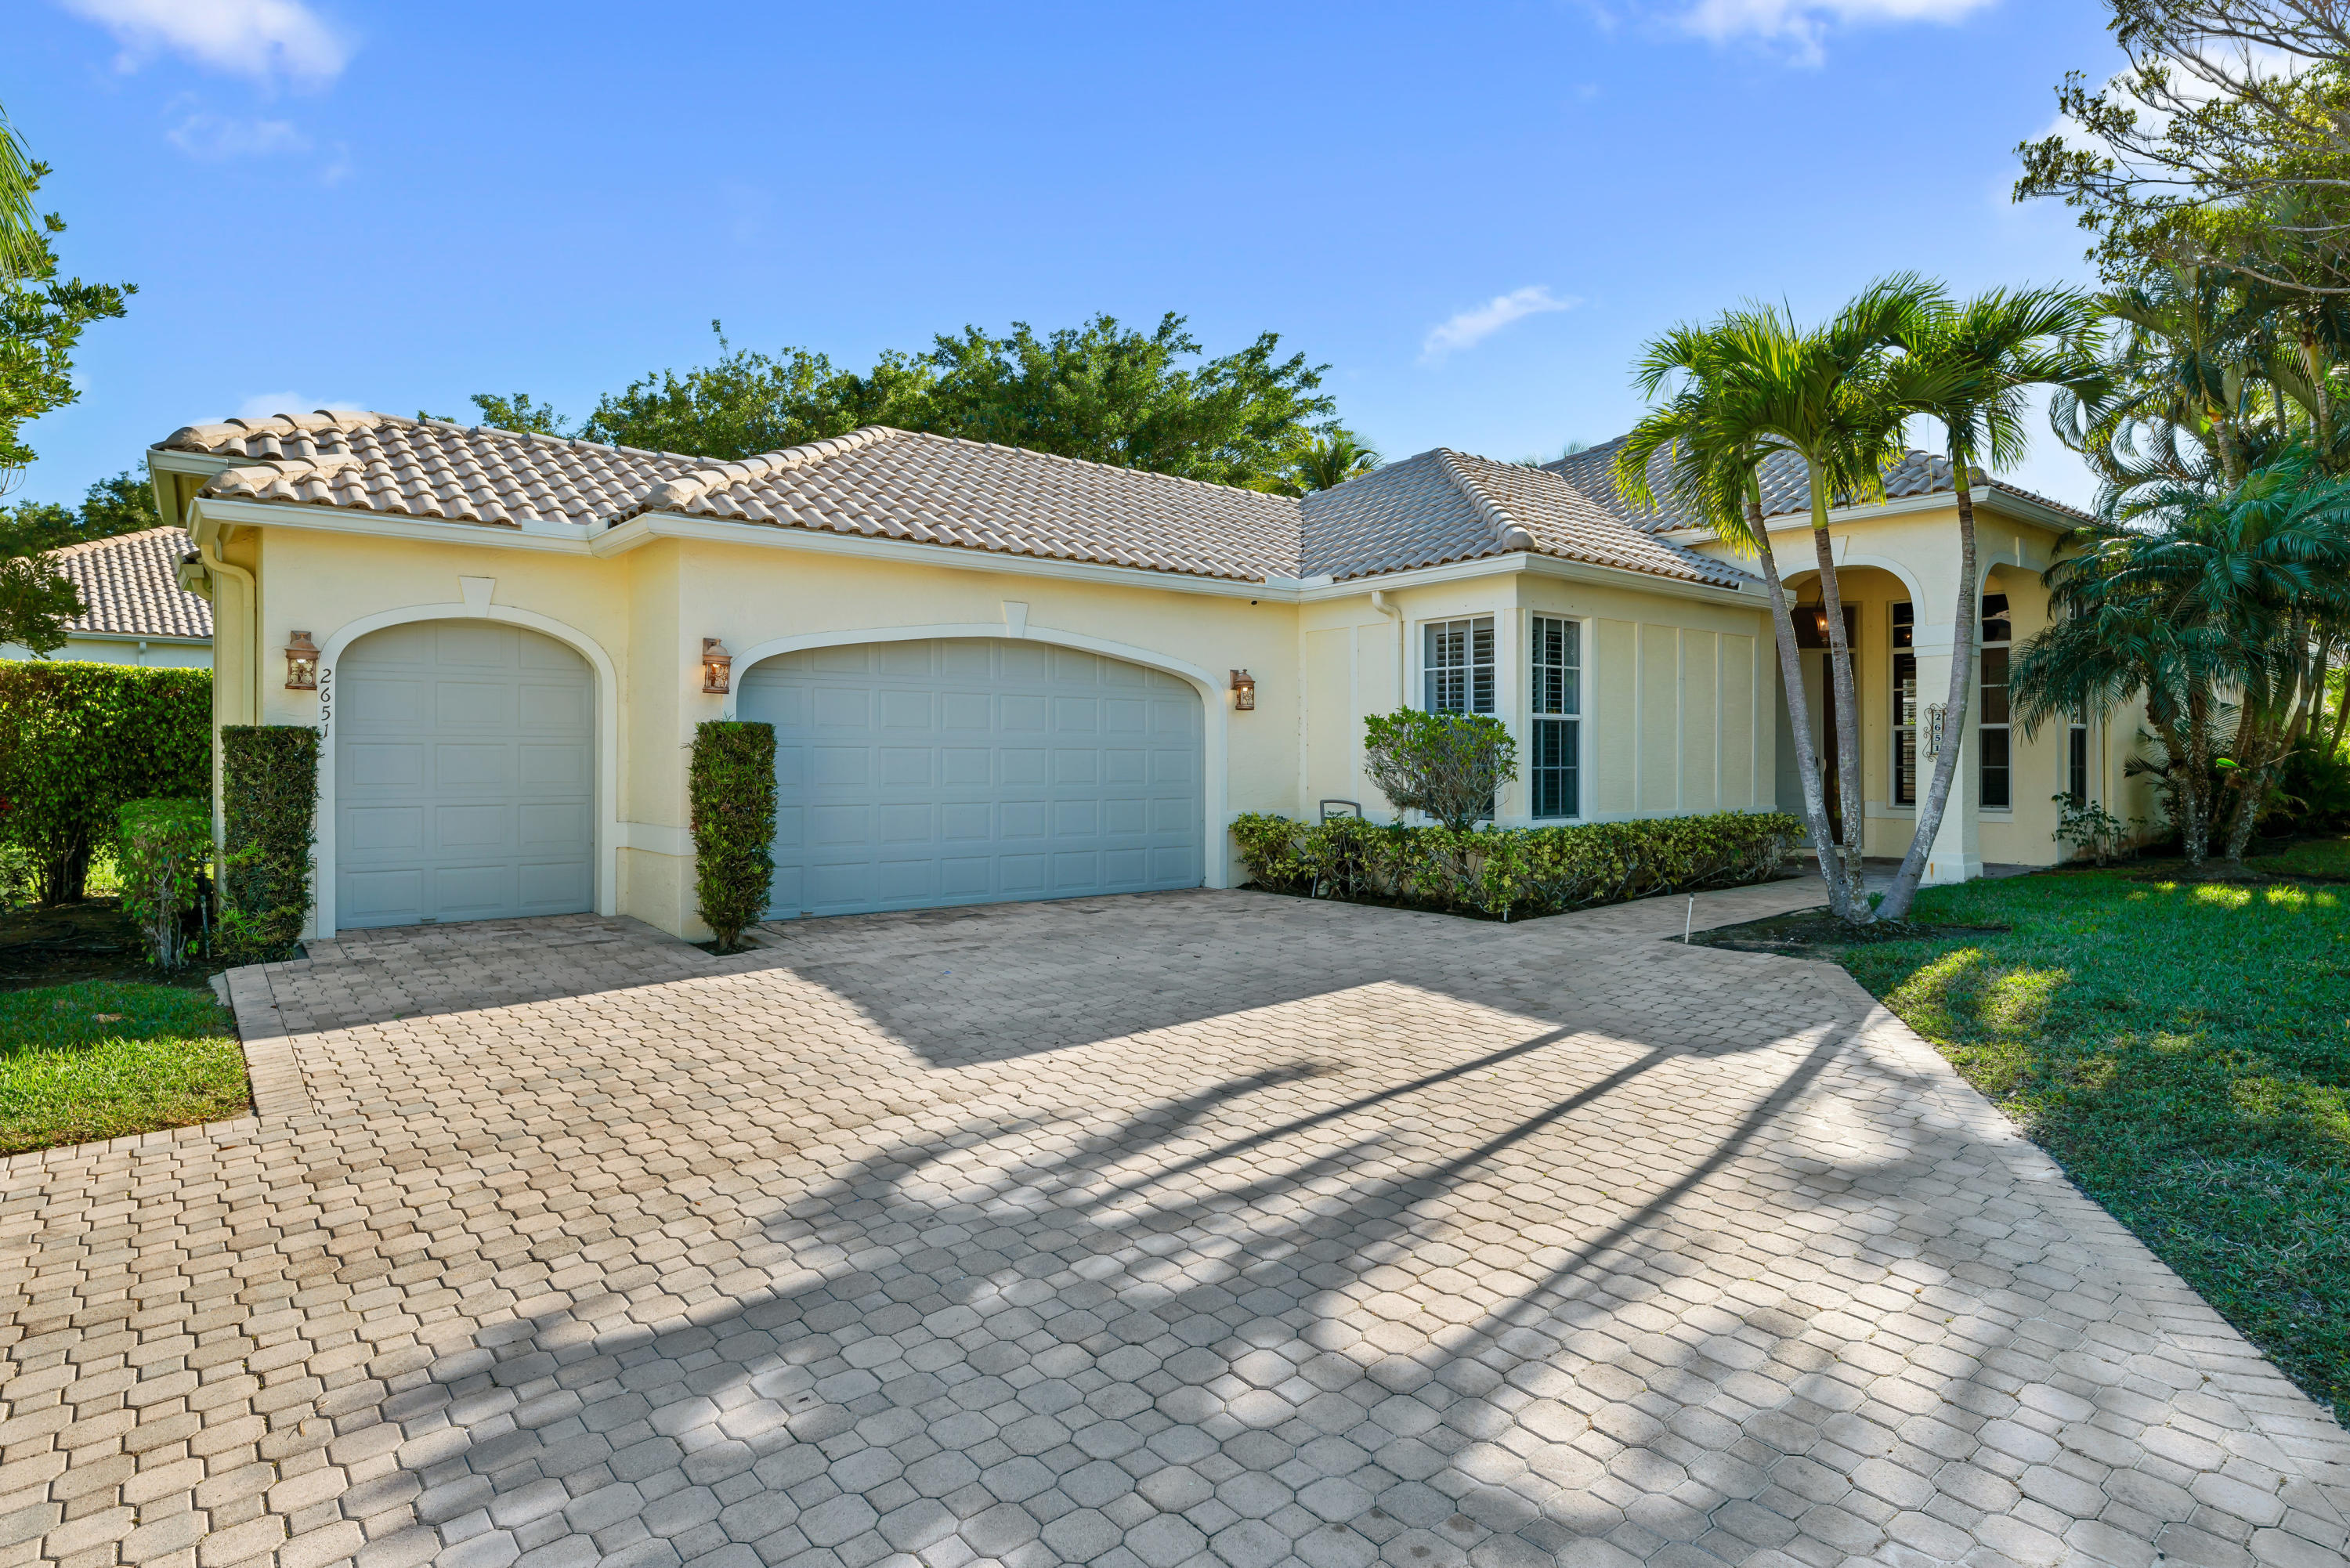 2651/2659 Players Court, Wellington, Florida 33414, 3 Bedrooms Bedrooms, ,3.1 BathroomsBathrooms,Single Family,For Sale,Palm Beach Polo & CC,Players,RX-10510540